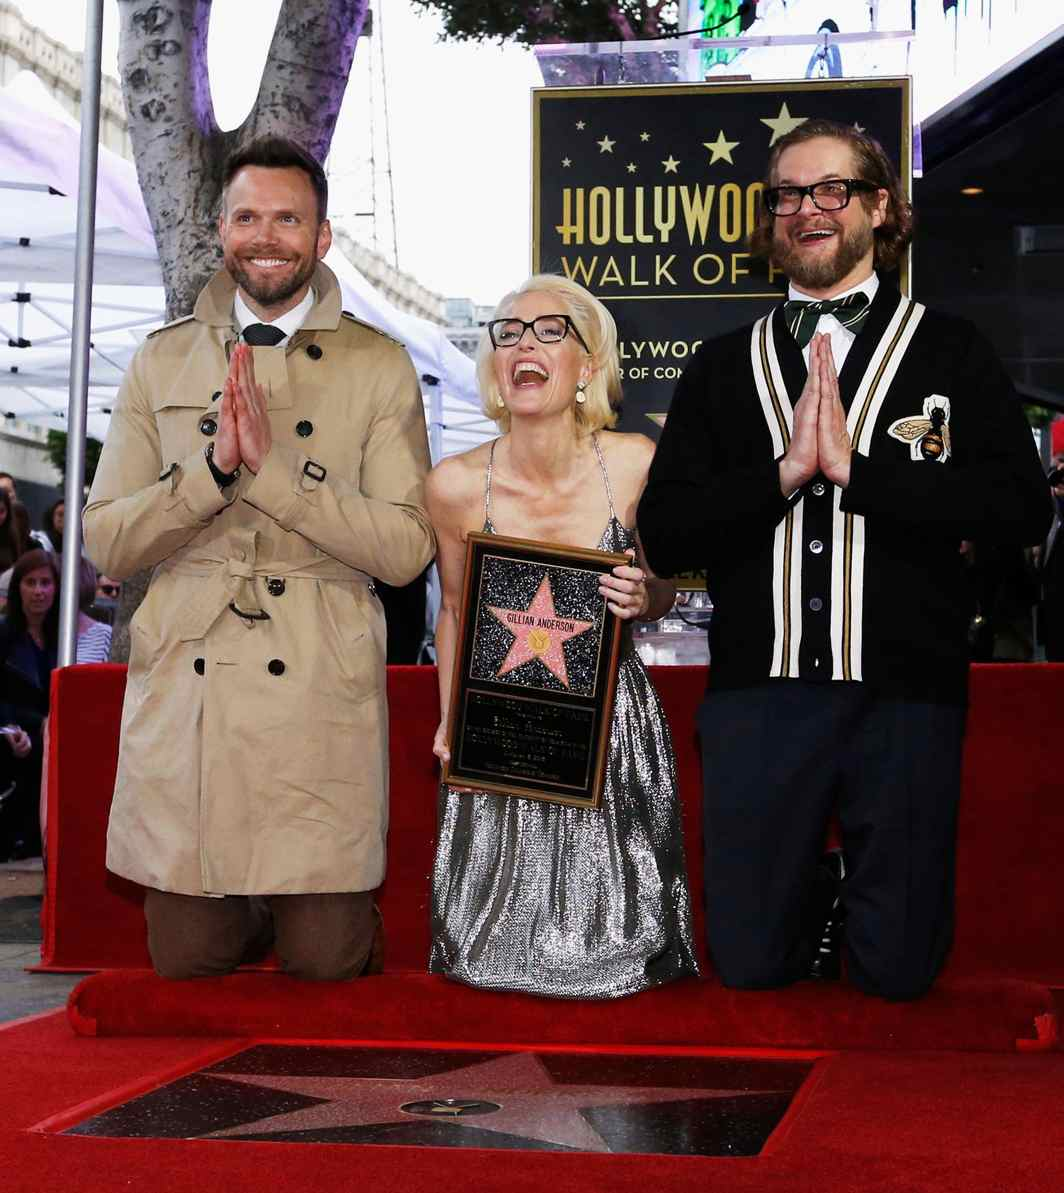 THE INIMITABLE SCULLY: Actor Gillian Anderson poses with actor Joel McHale (L) and writer Bryan Fuller on her star after it was unveiled on the Hollywood Walk of Fame in Los Angeles, California, US, Reuters/UNI